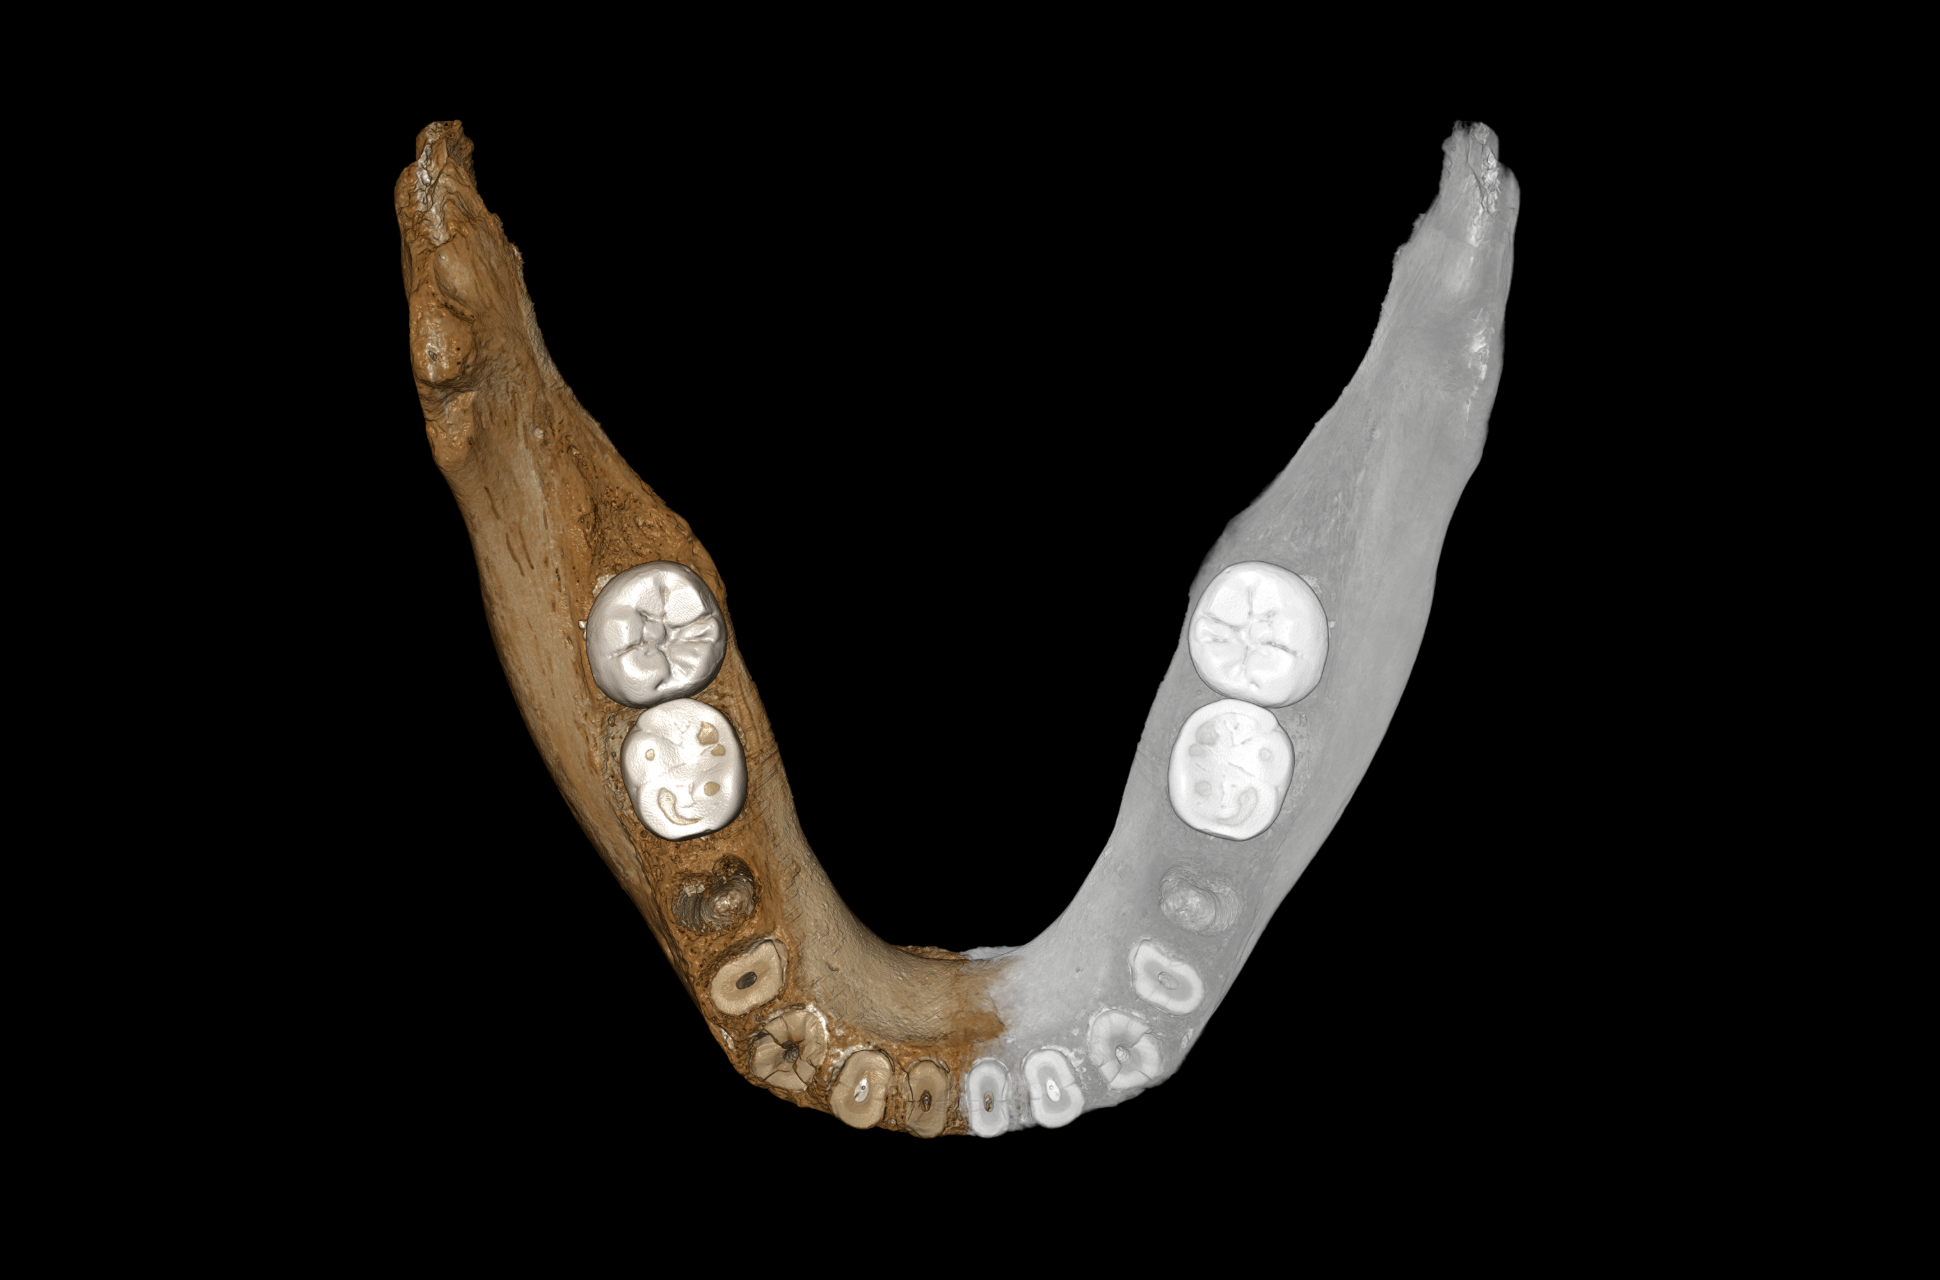 Denisovan jawbone discovery – Expert Reaction